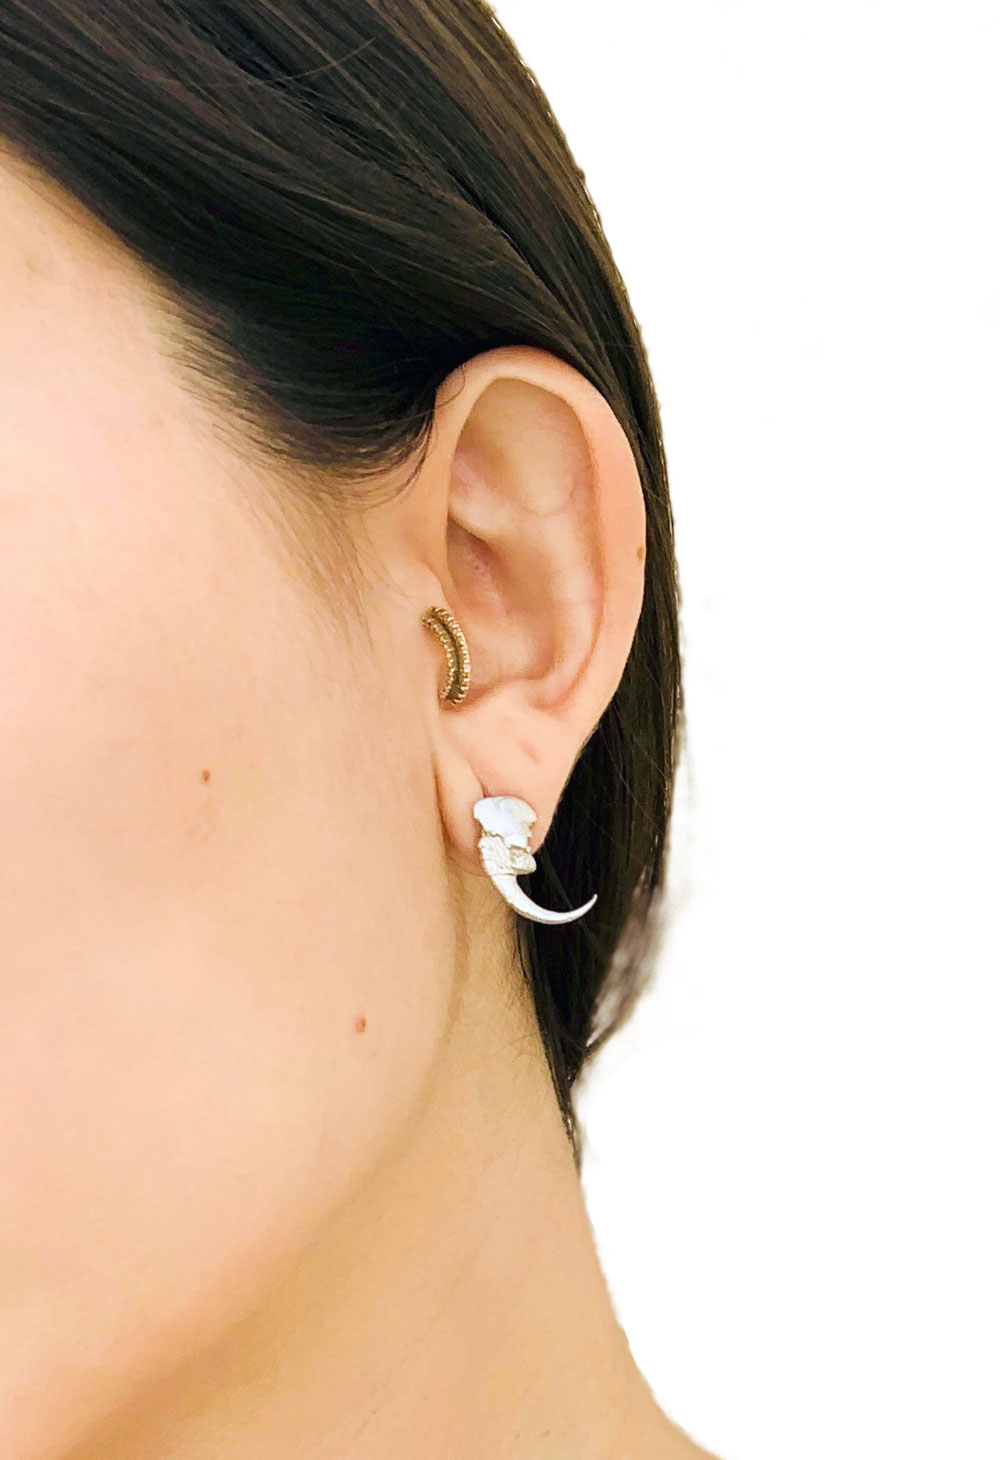 Stud earring, replicated from a long eared claw